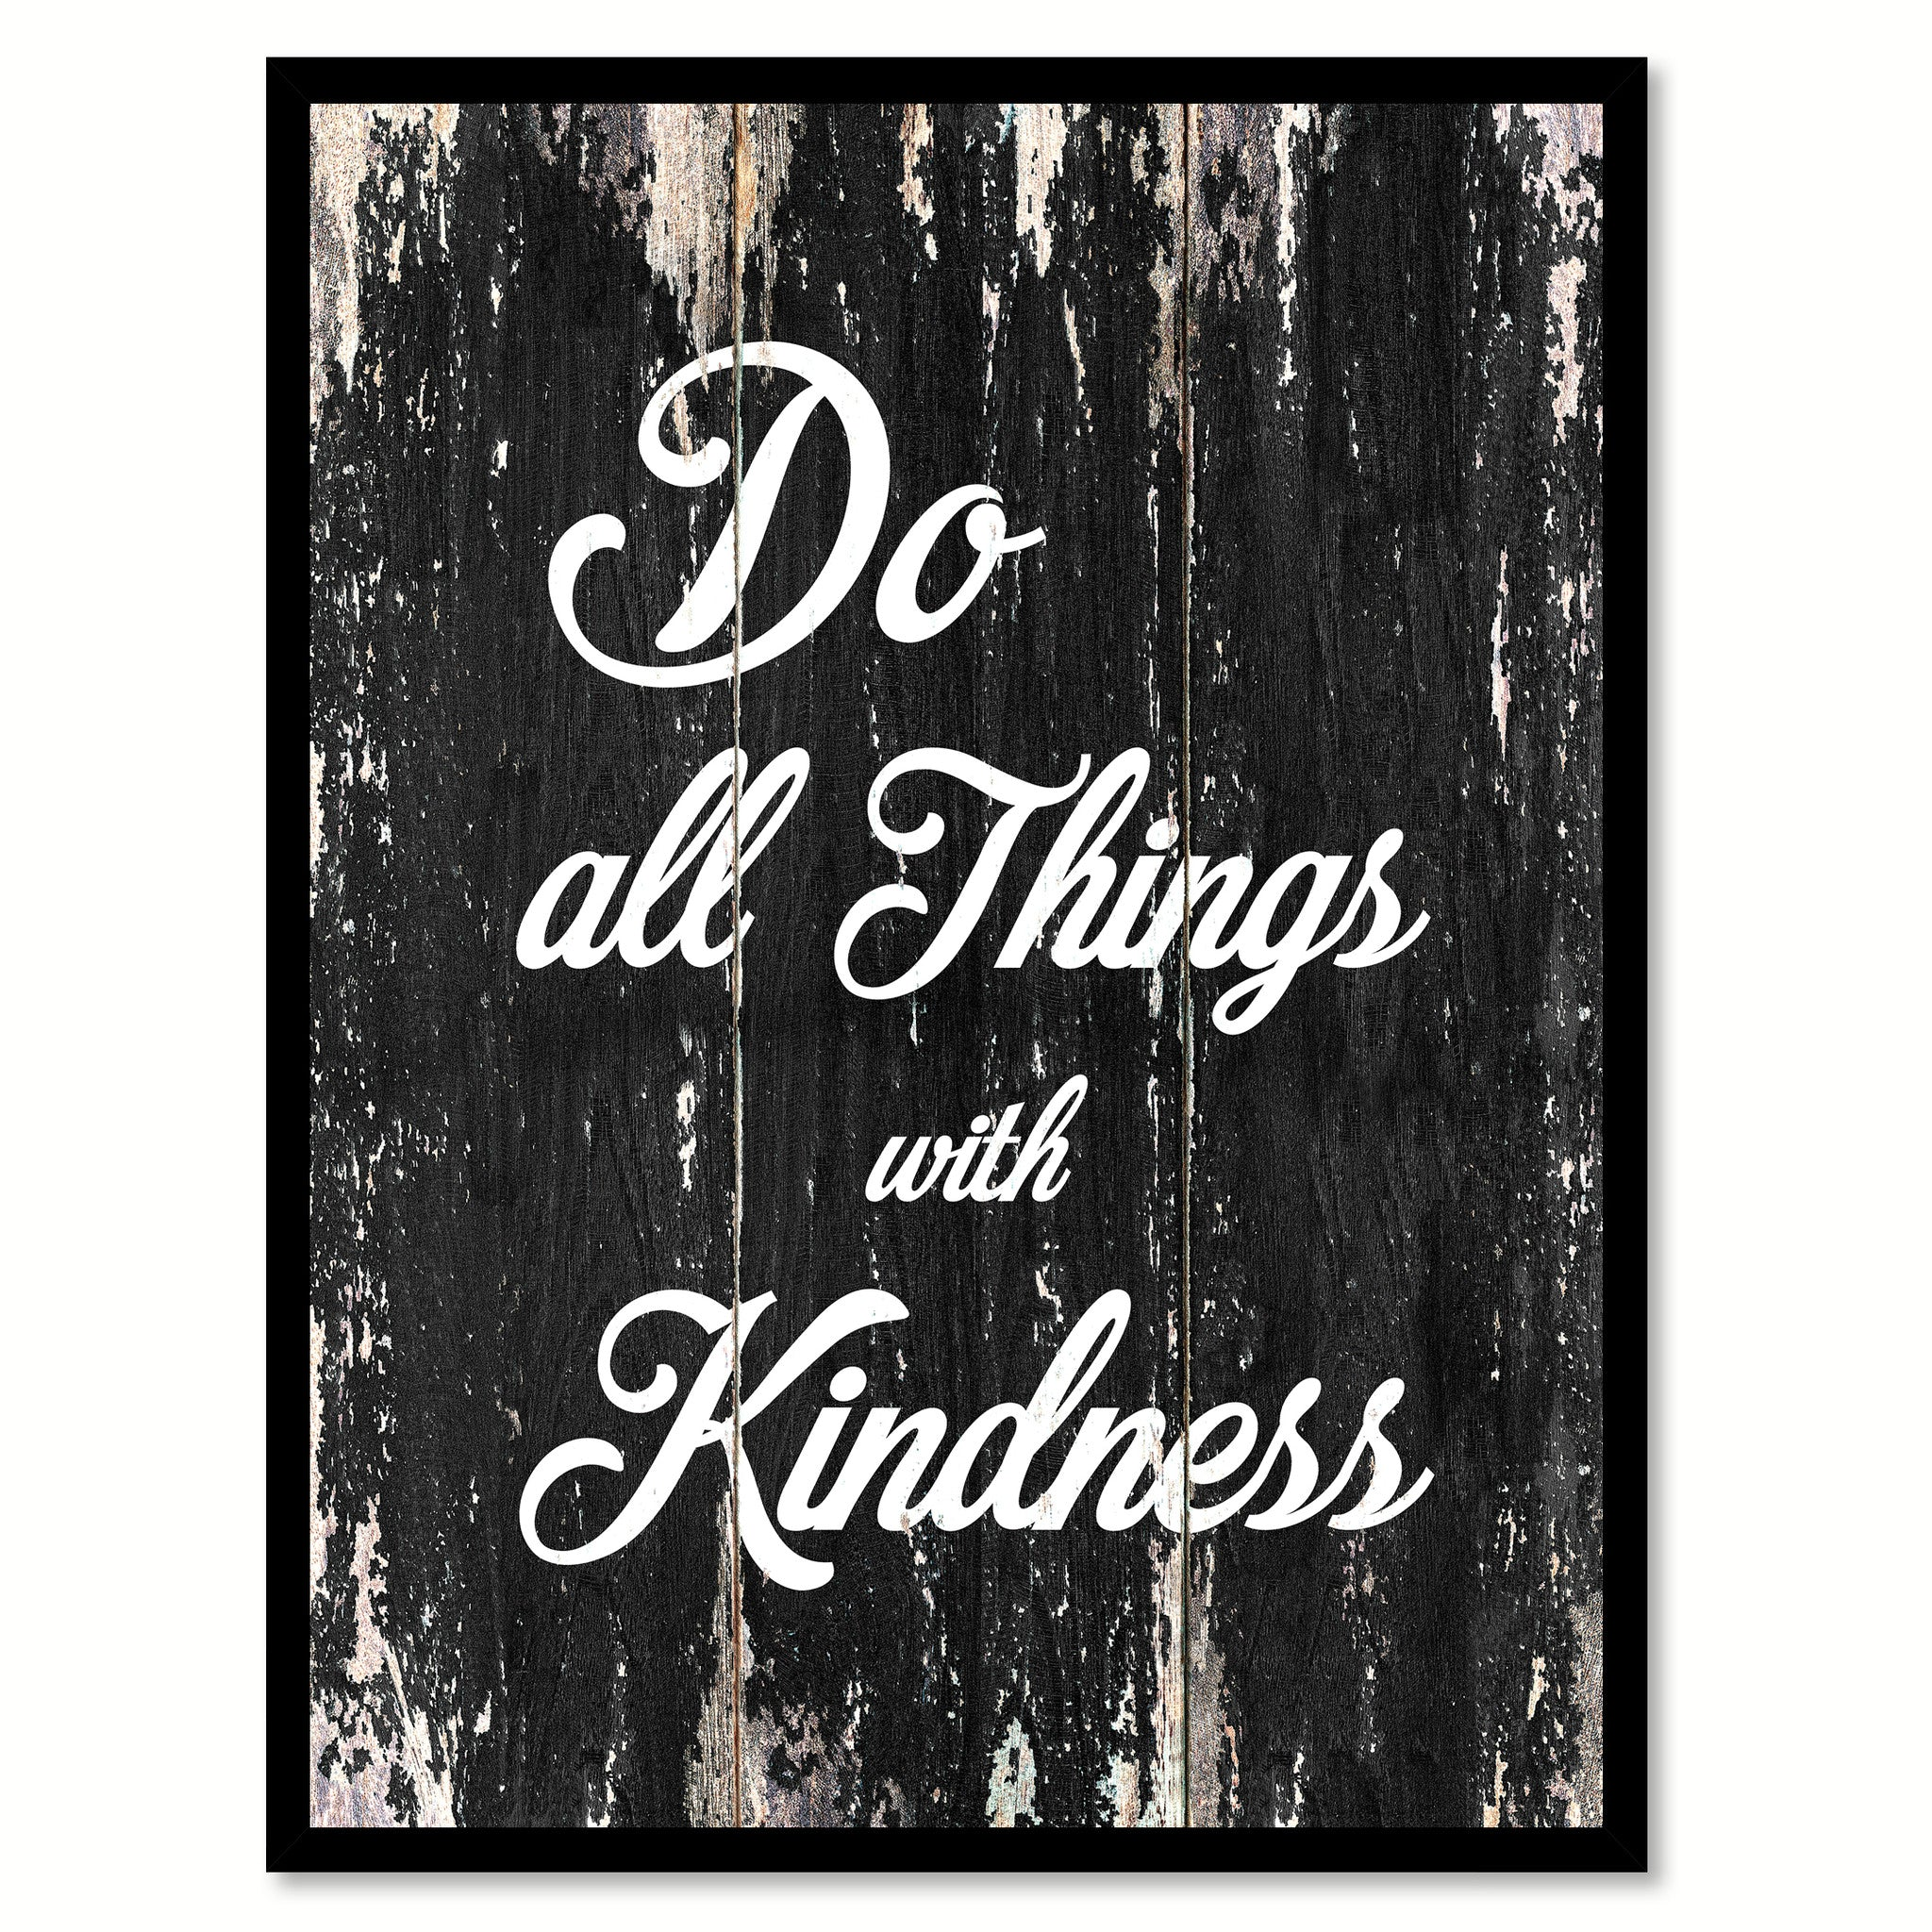 Do all things with kindness Quote Saying Canvas Print with Picture Frame Home Decor Wall Art